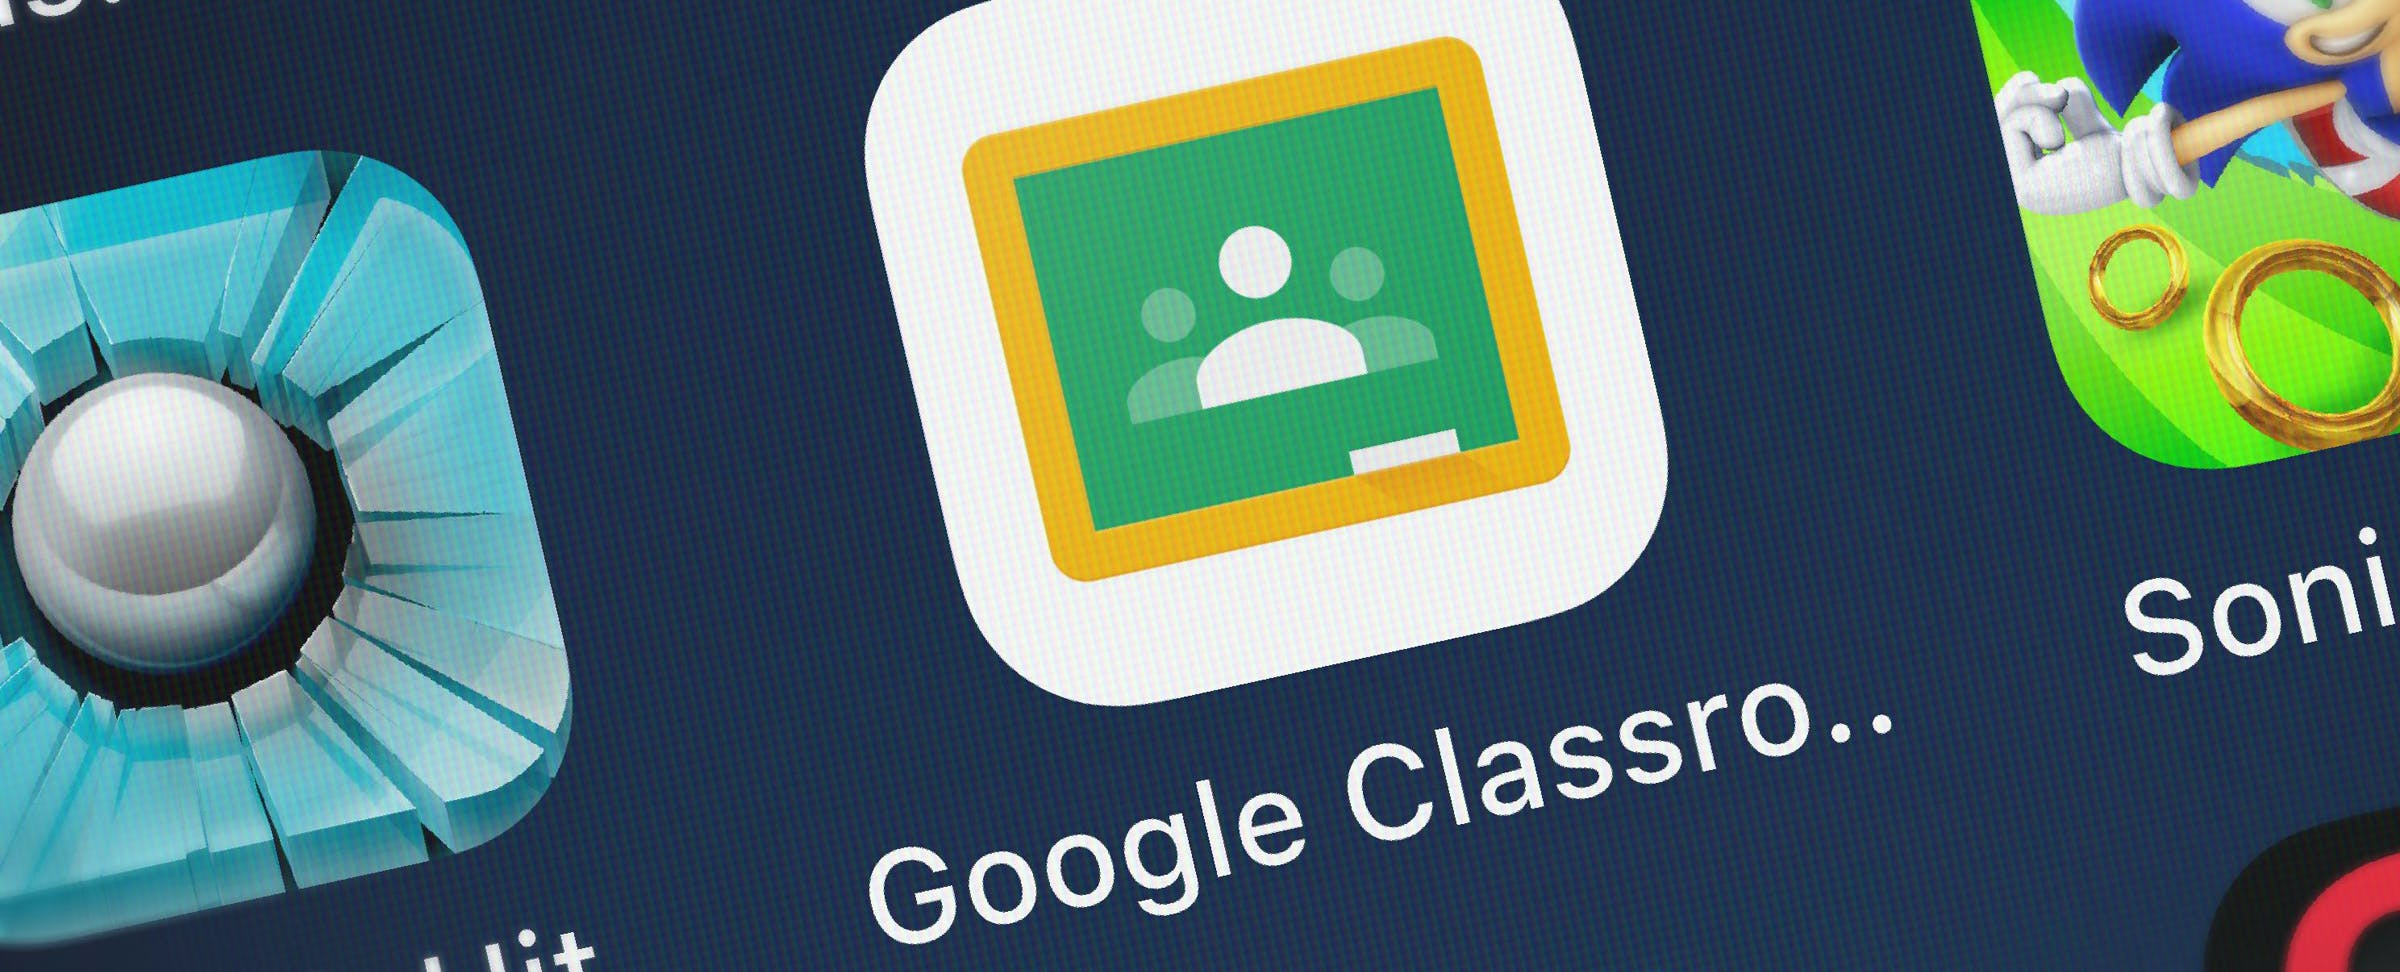 Google Makes a Rare Education Technology Acquisition: Workbench